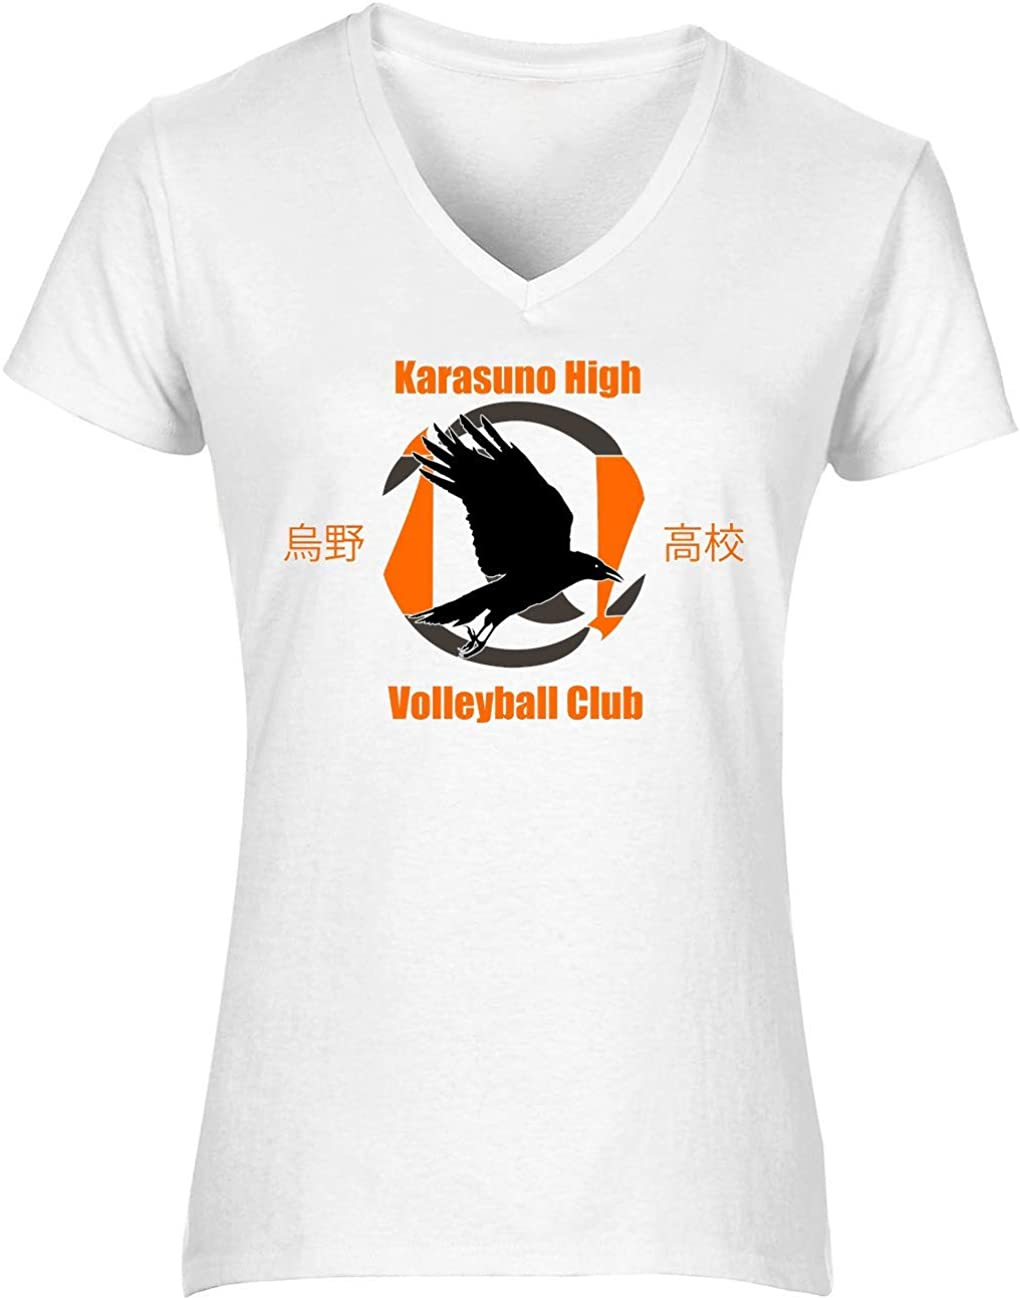 NoMoreFamous Karasuno High Volleybal Haikyuu Womens T-Shirt V ...